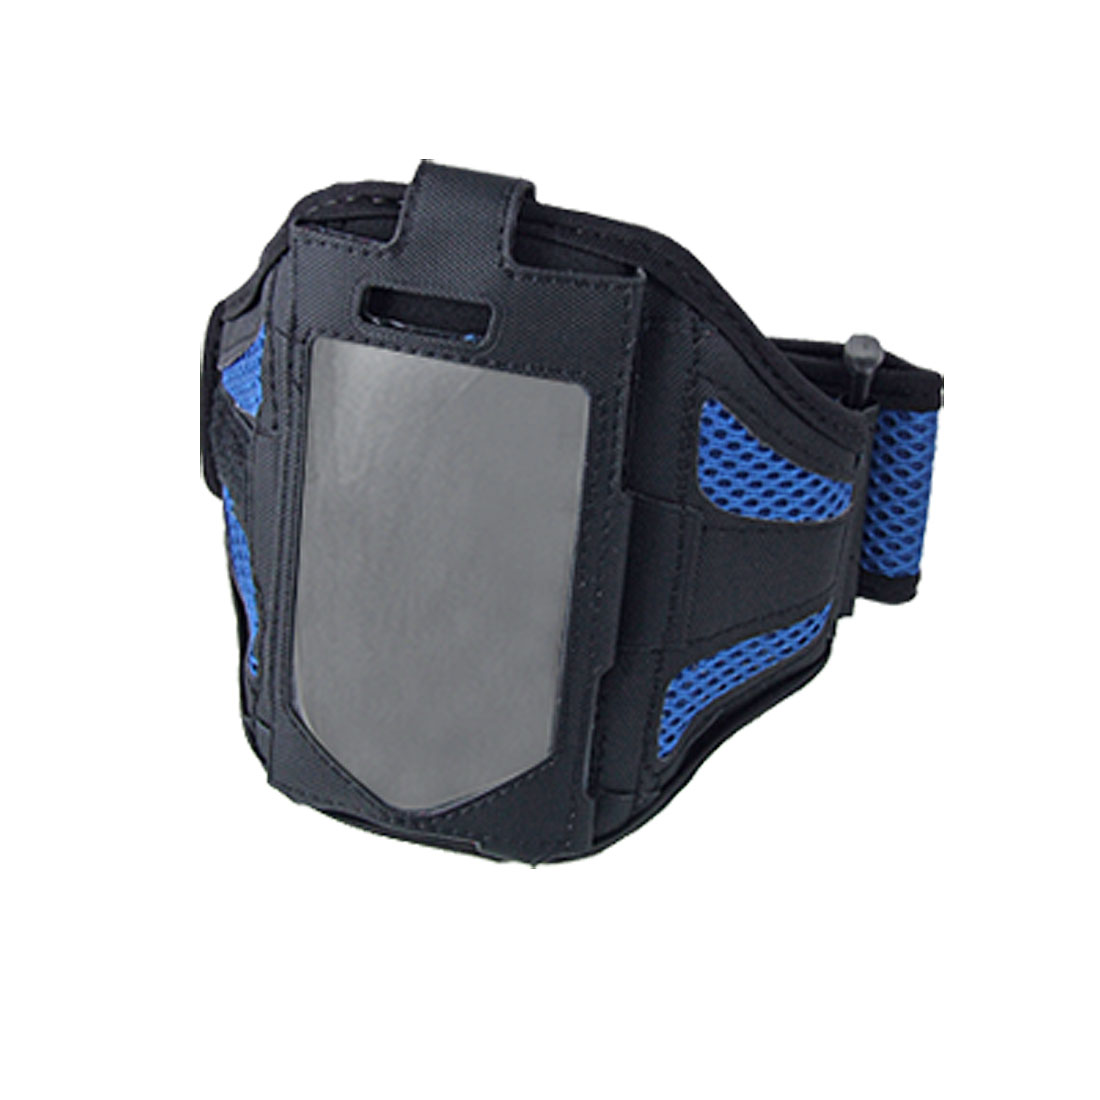 Velcro Closure Sports Blue Holder Armband for iPhone 4